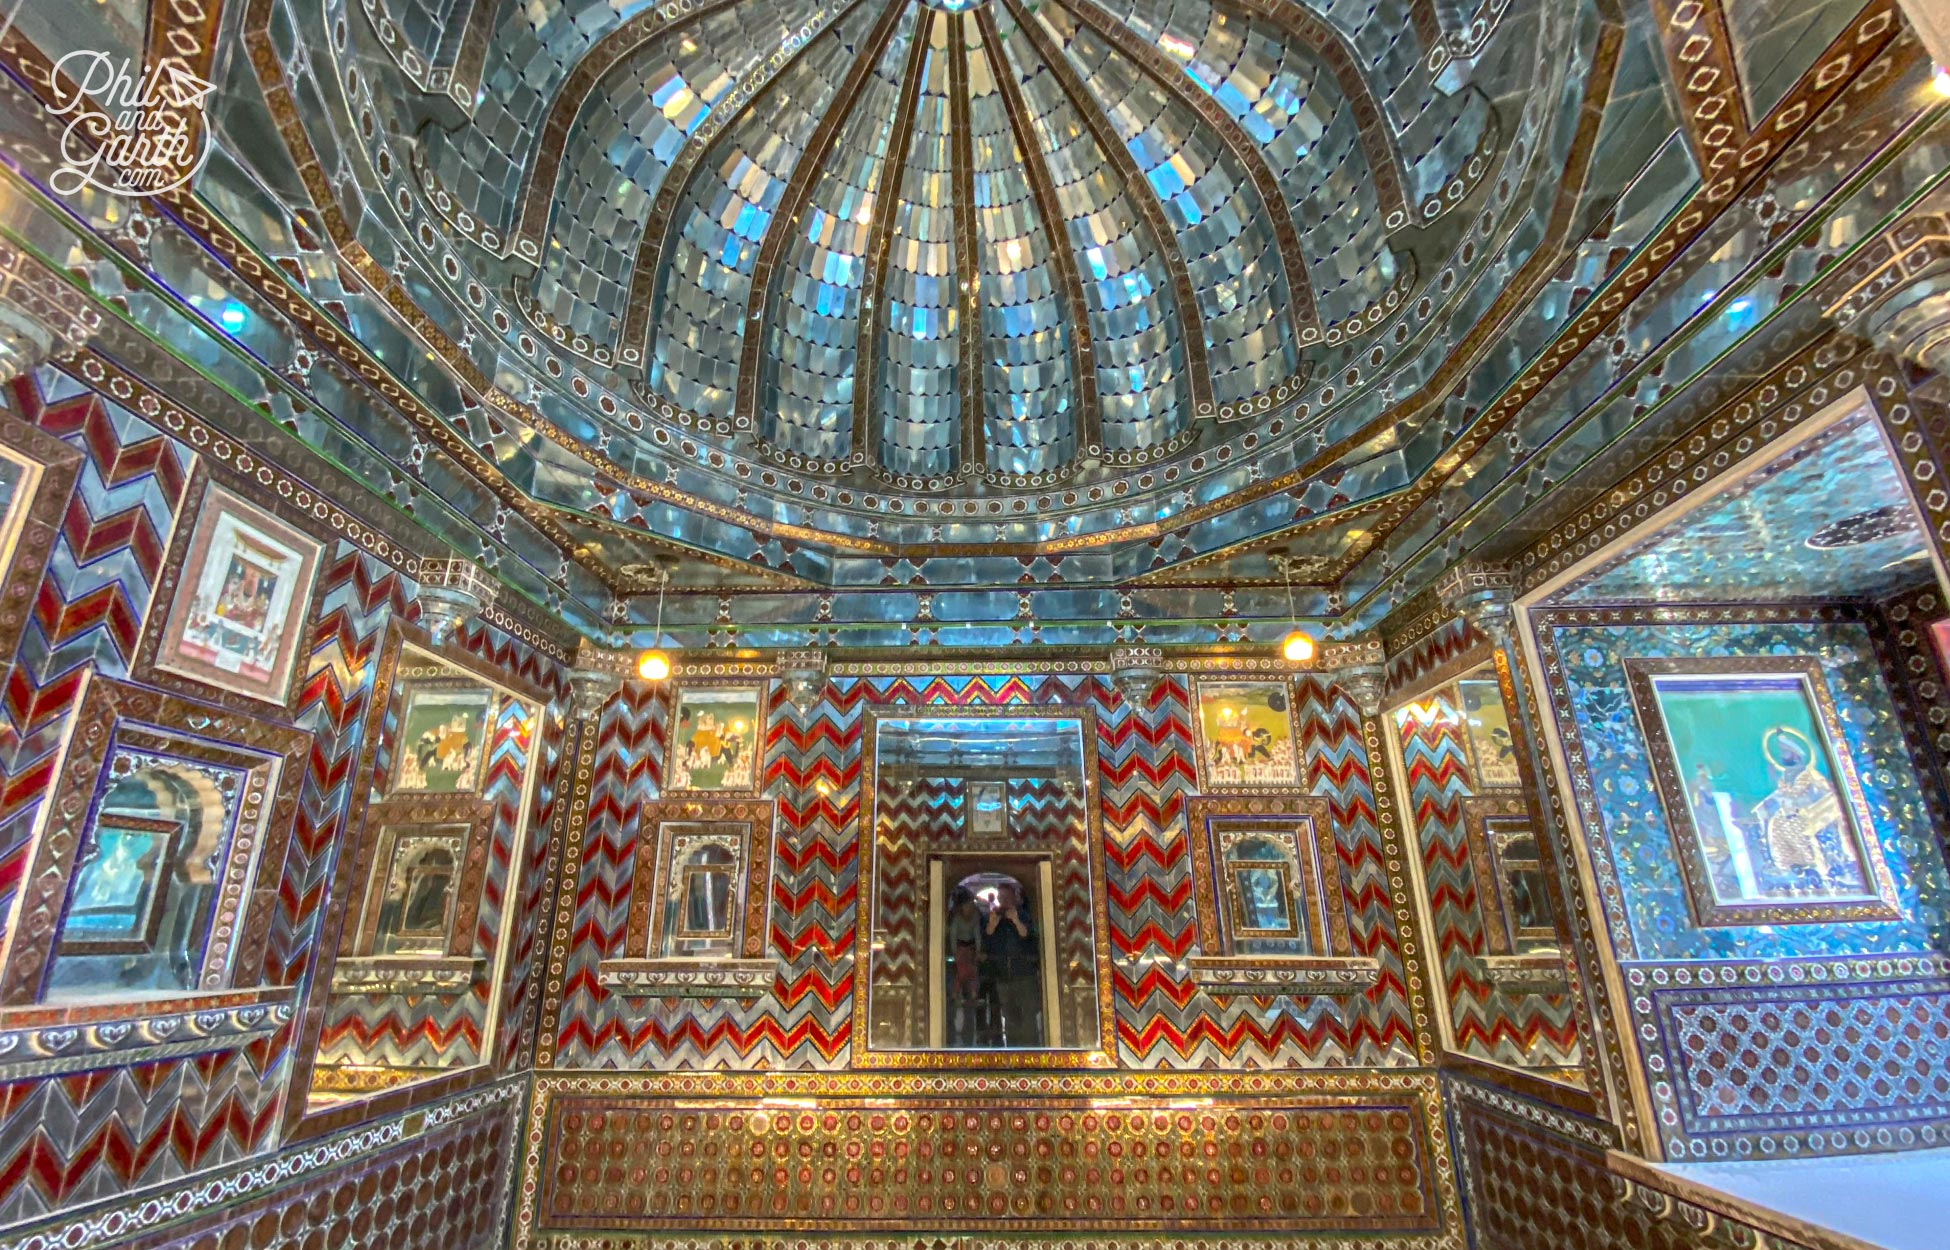 The incredible and opulent Kanch Ki Burj chamber with mosaics of mirror, red and silver glass